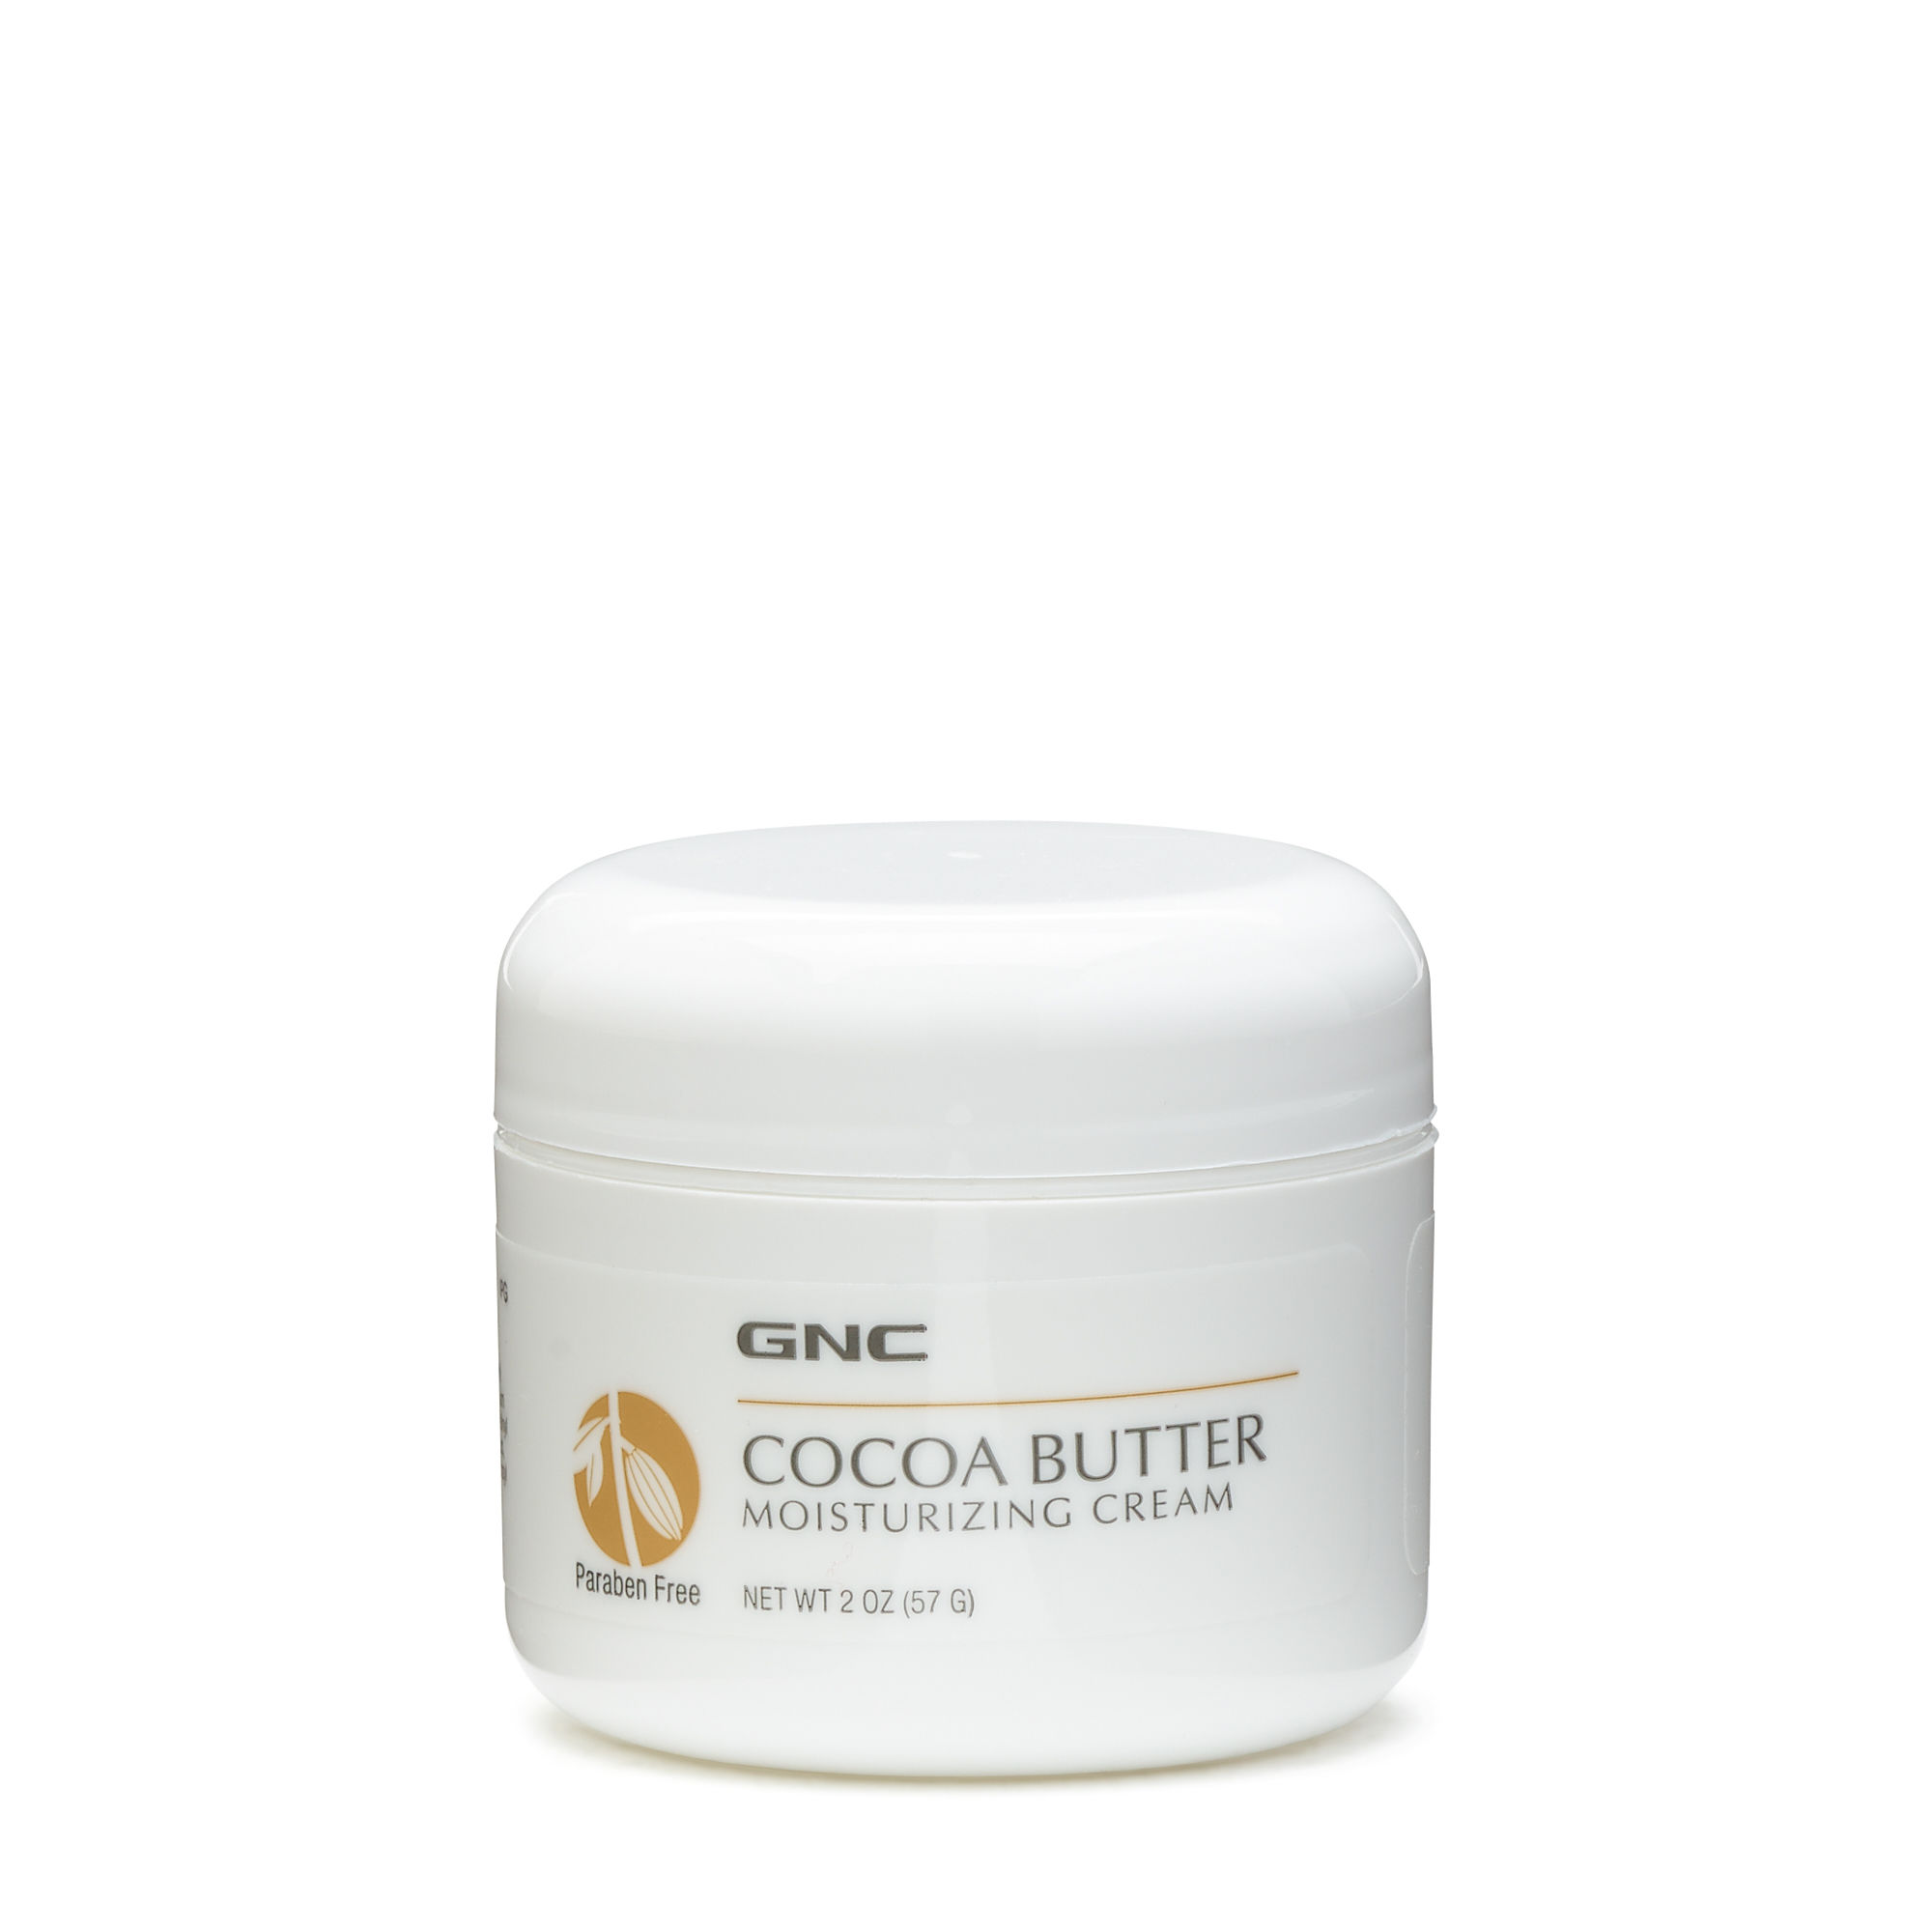 GNC COCOA BUTTER MOISTURIZING CREAM 可可脂保濕潤膚霜 (2oz)